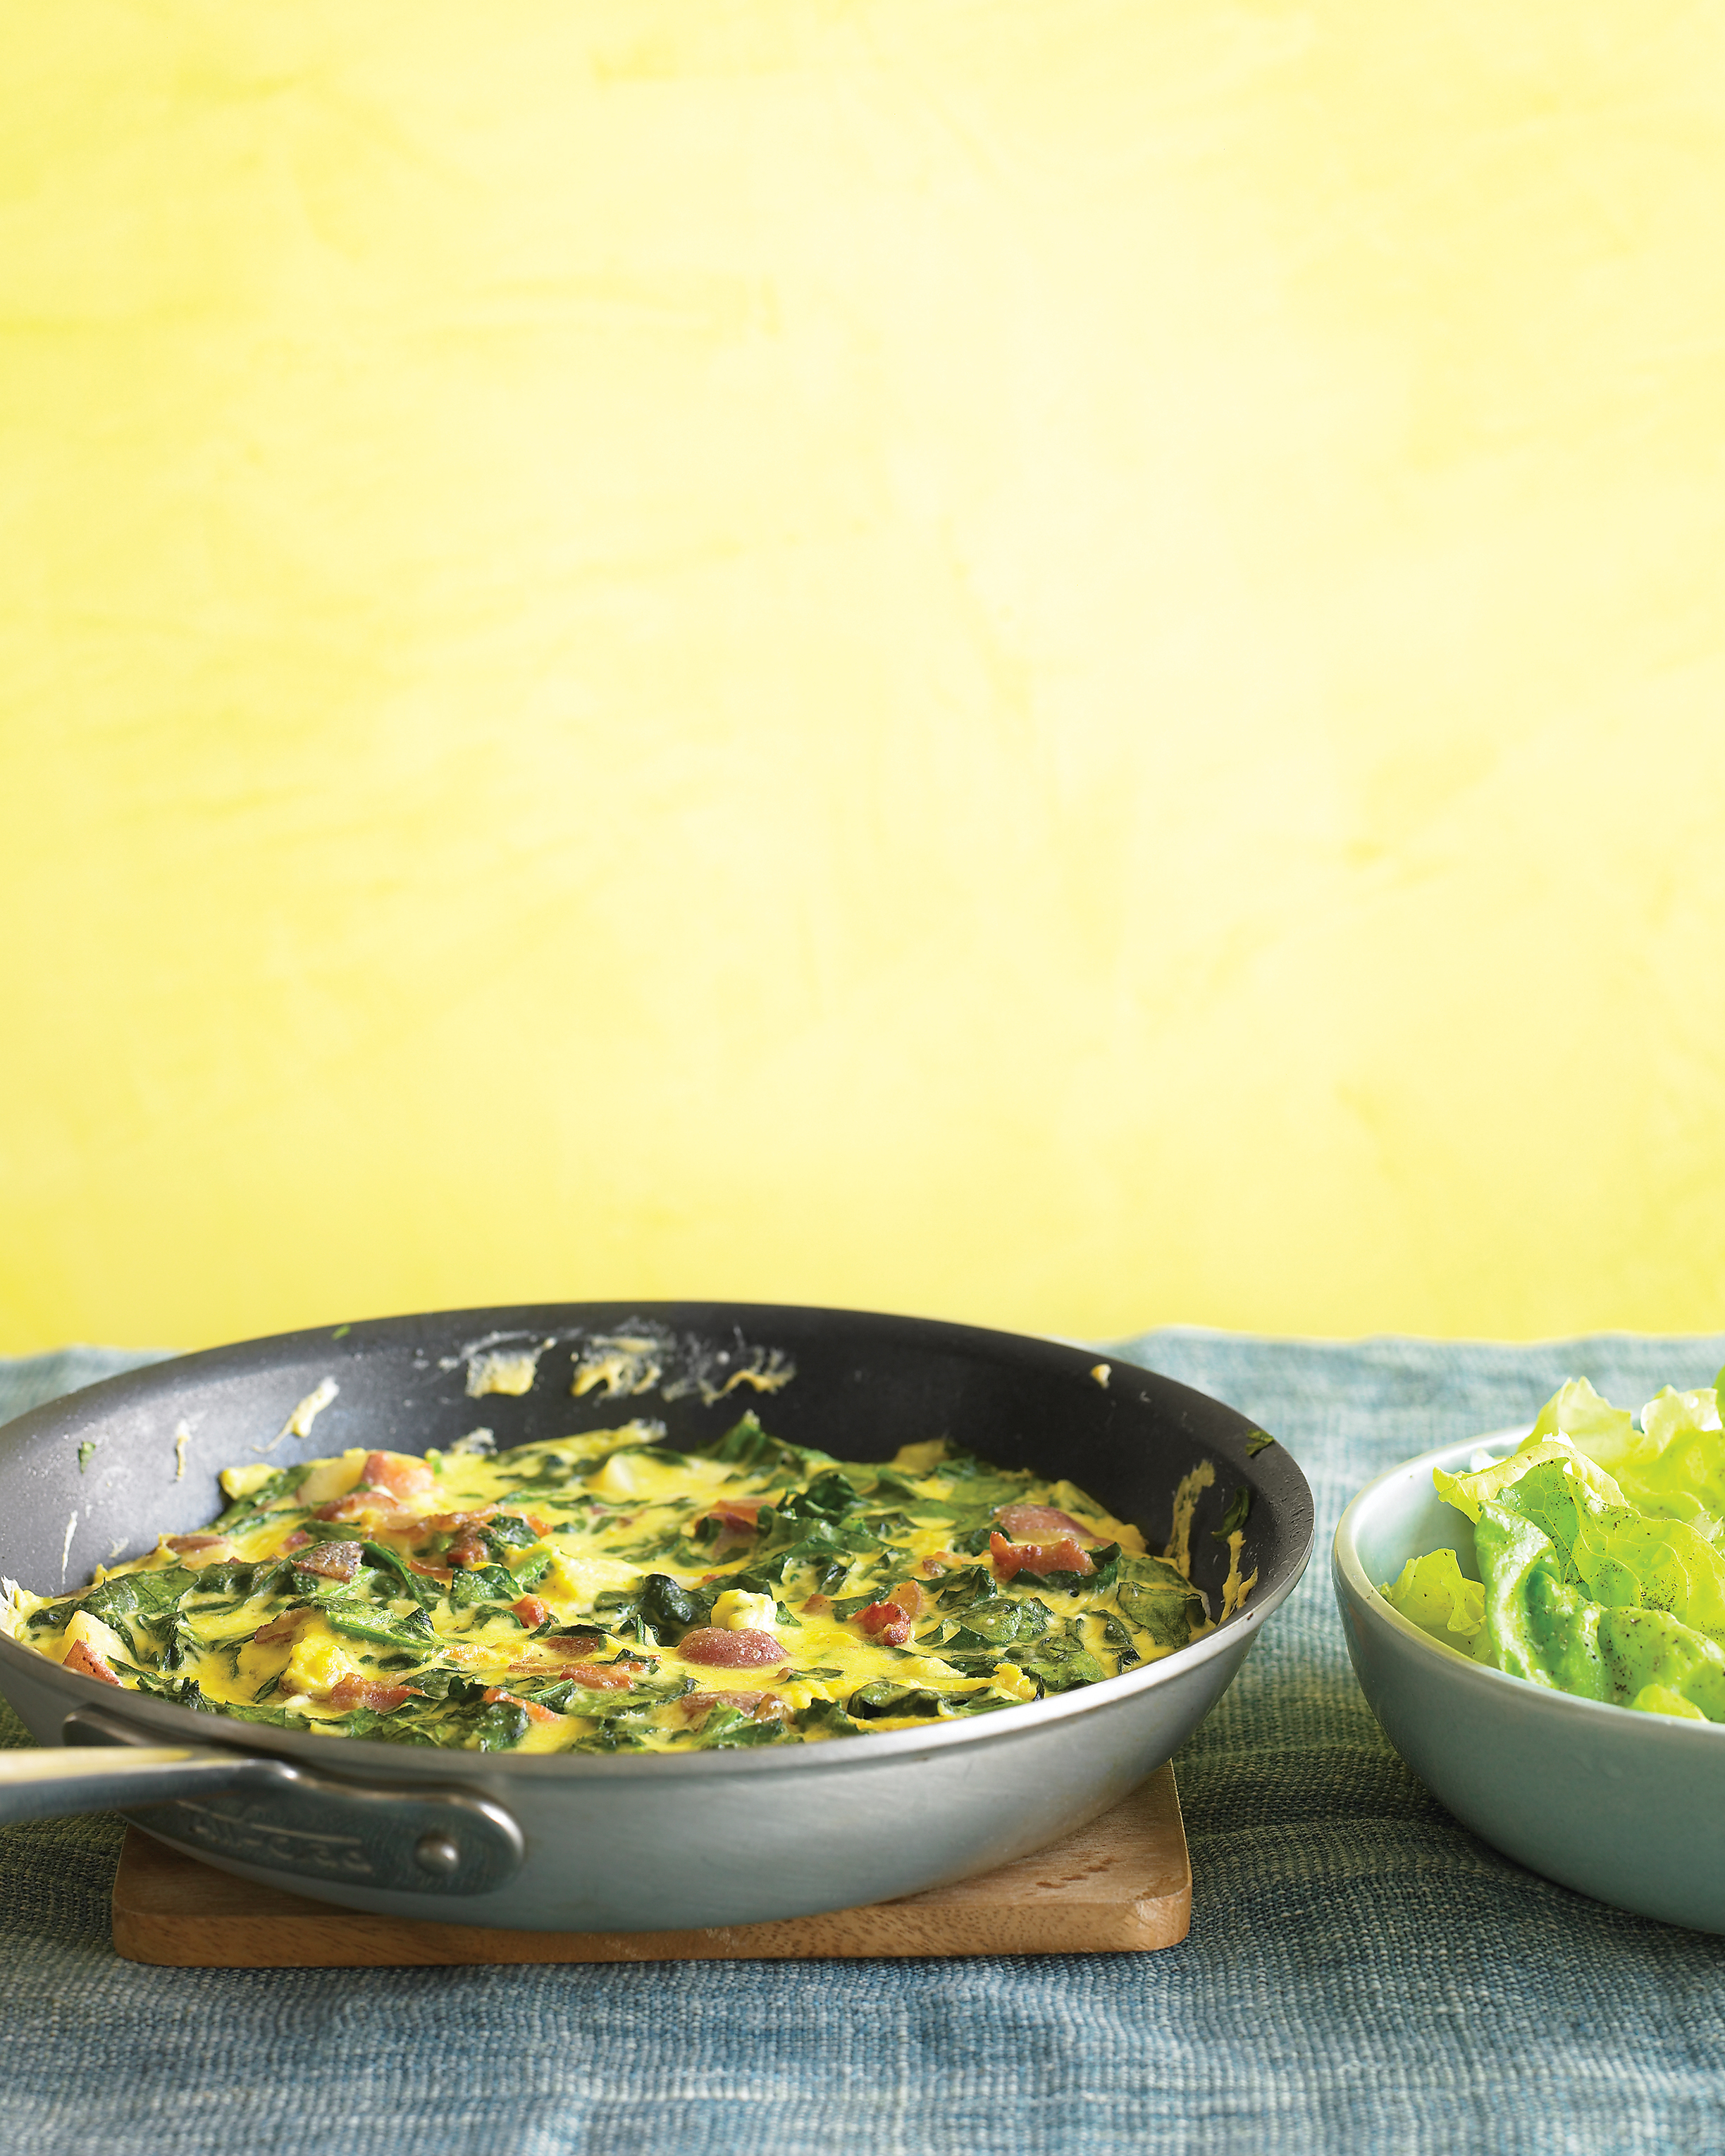 The Crowd-Pleaser: Spinach and Bacon Frittata